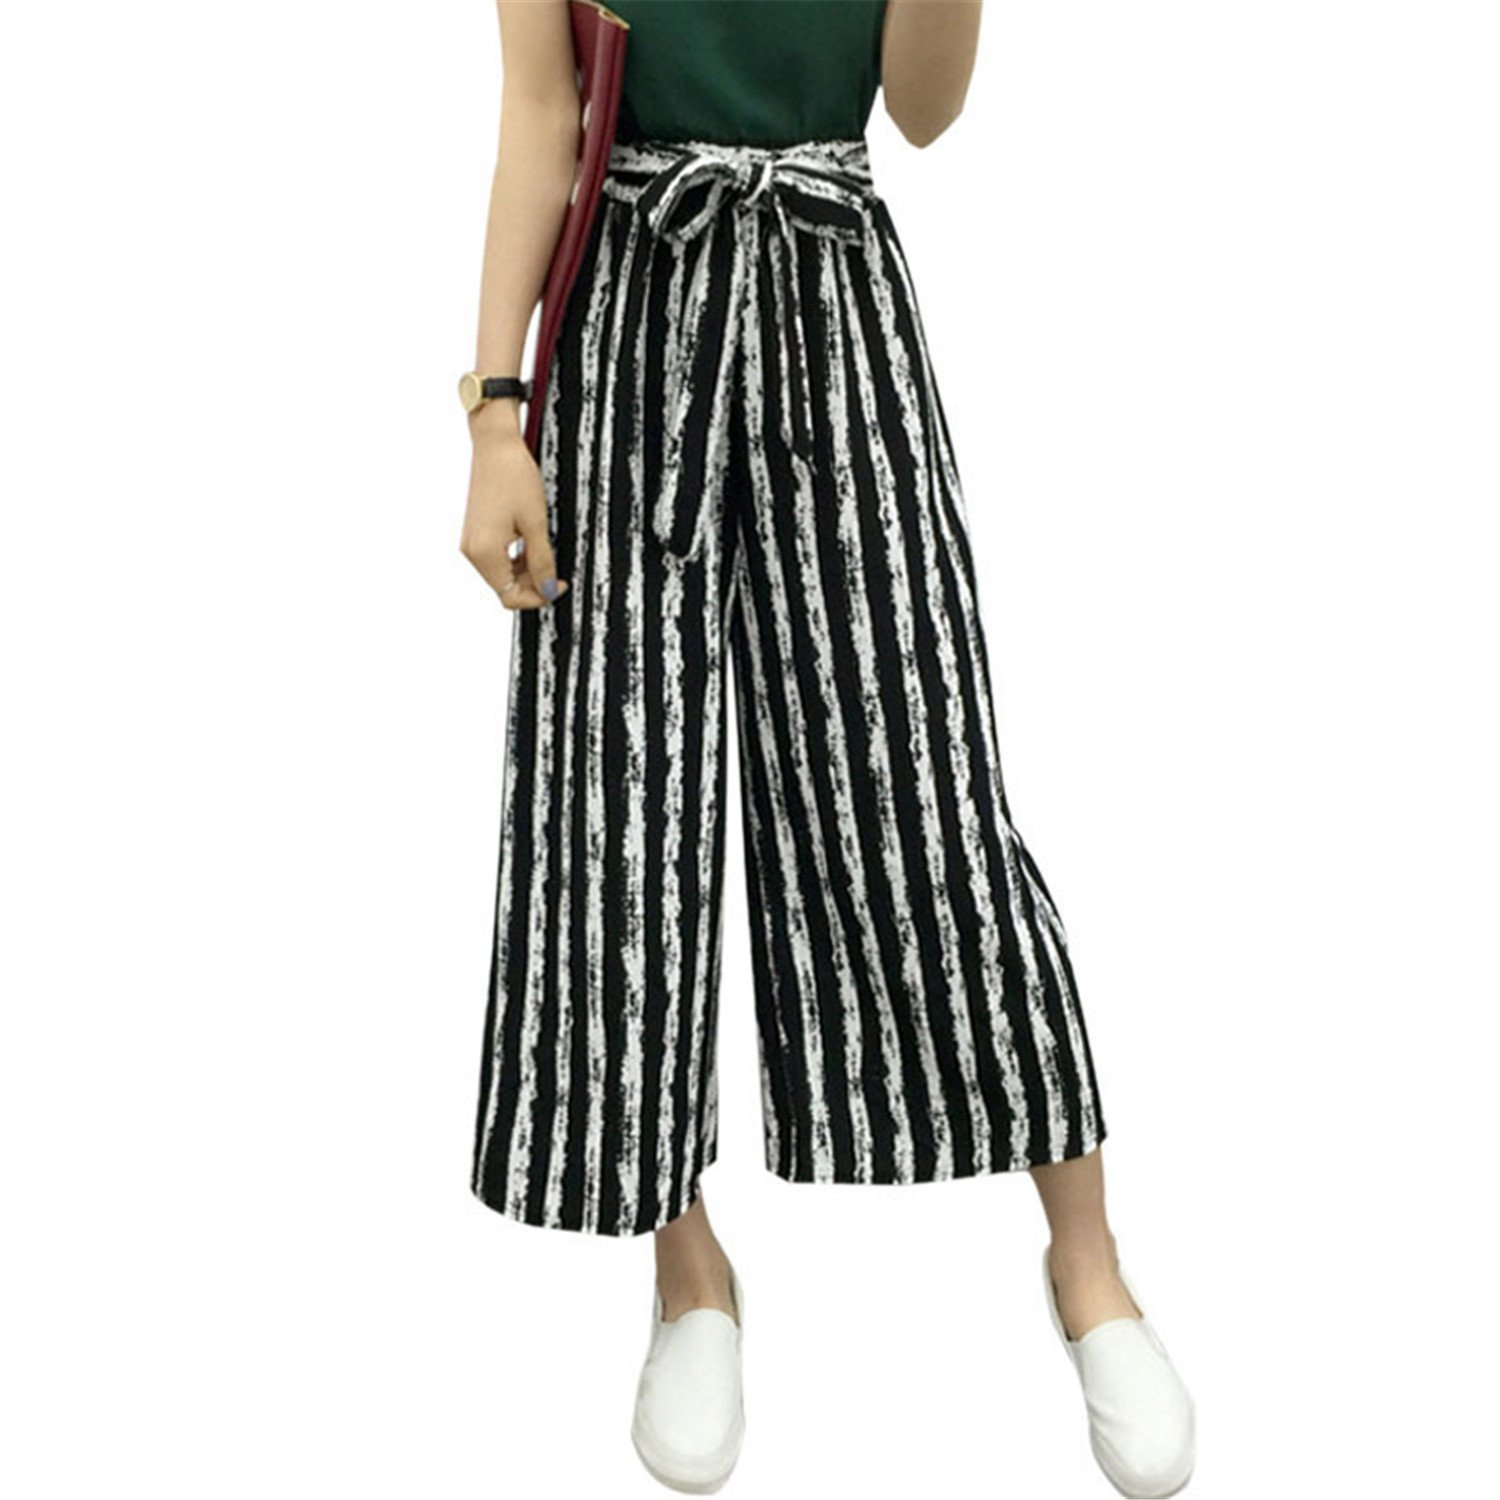 Fashion Summer Hot Selling Ladies Office Trousers Loose Wide Leg Pants Woman High Waist OL Casual Office Pants for Women Fine Black Bars M by Rainlife pants (Image #2)